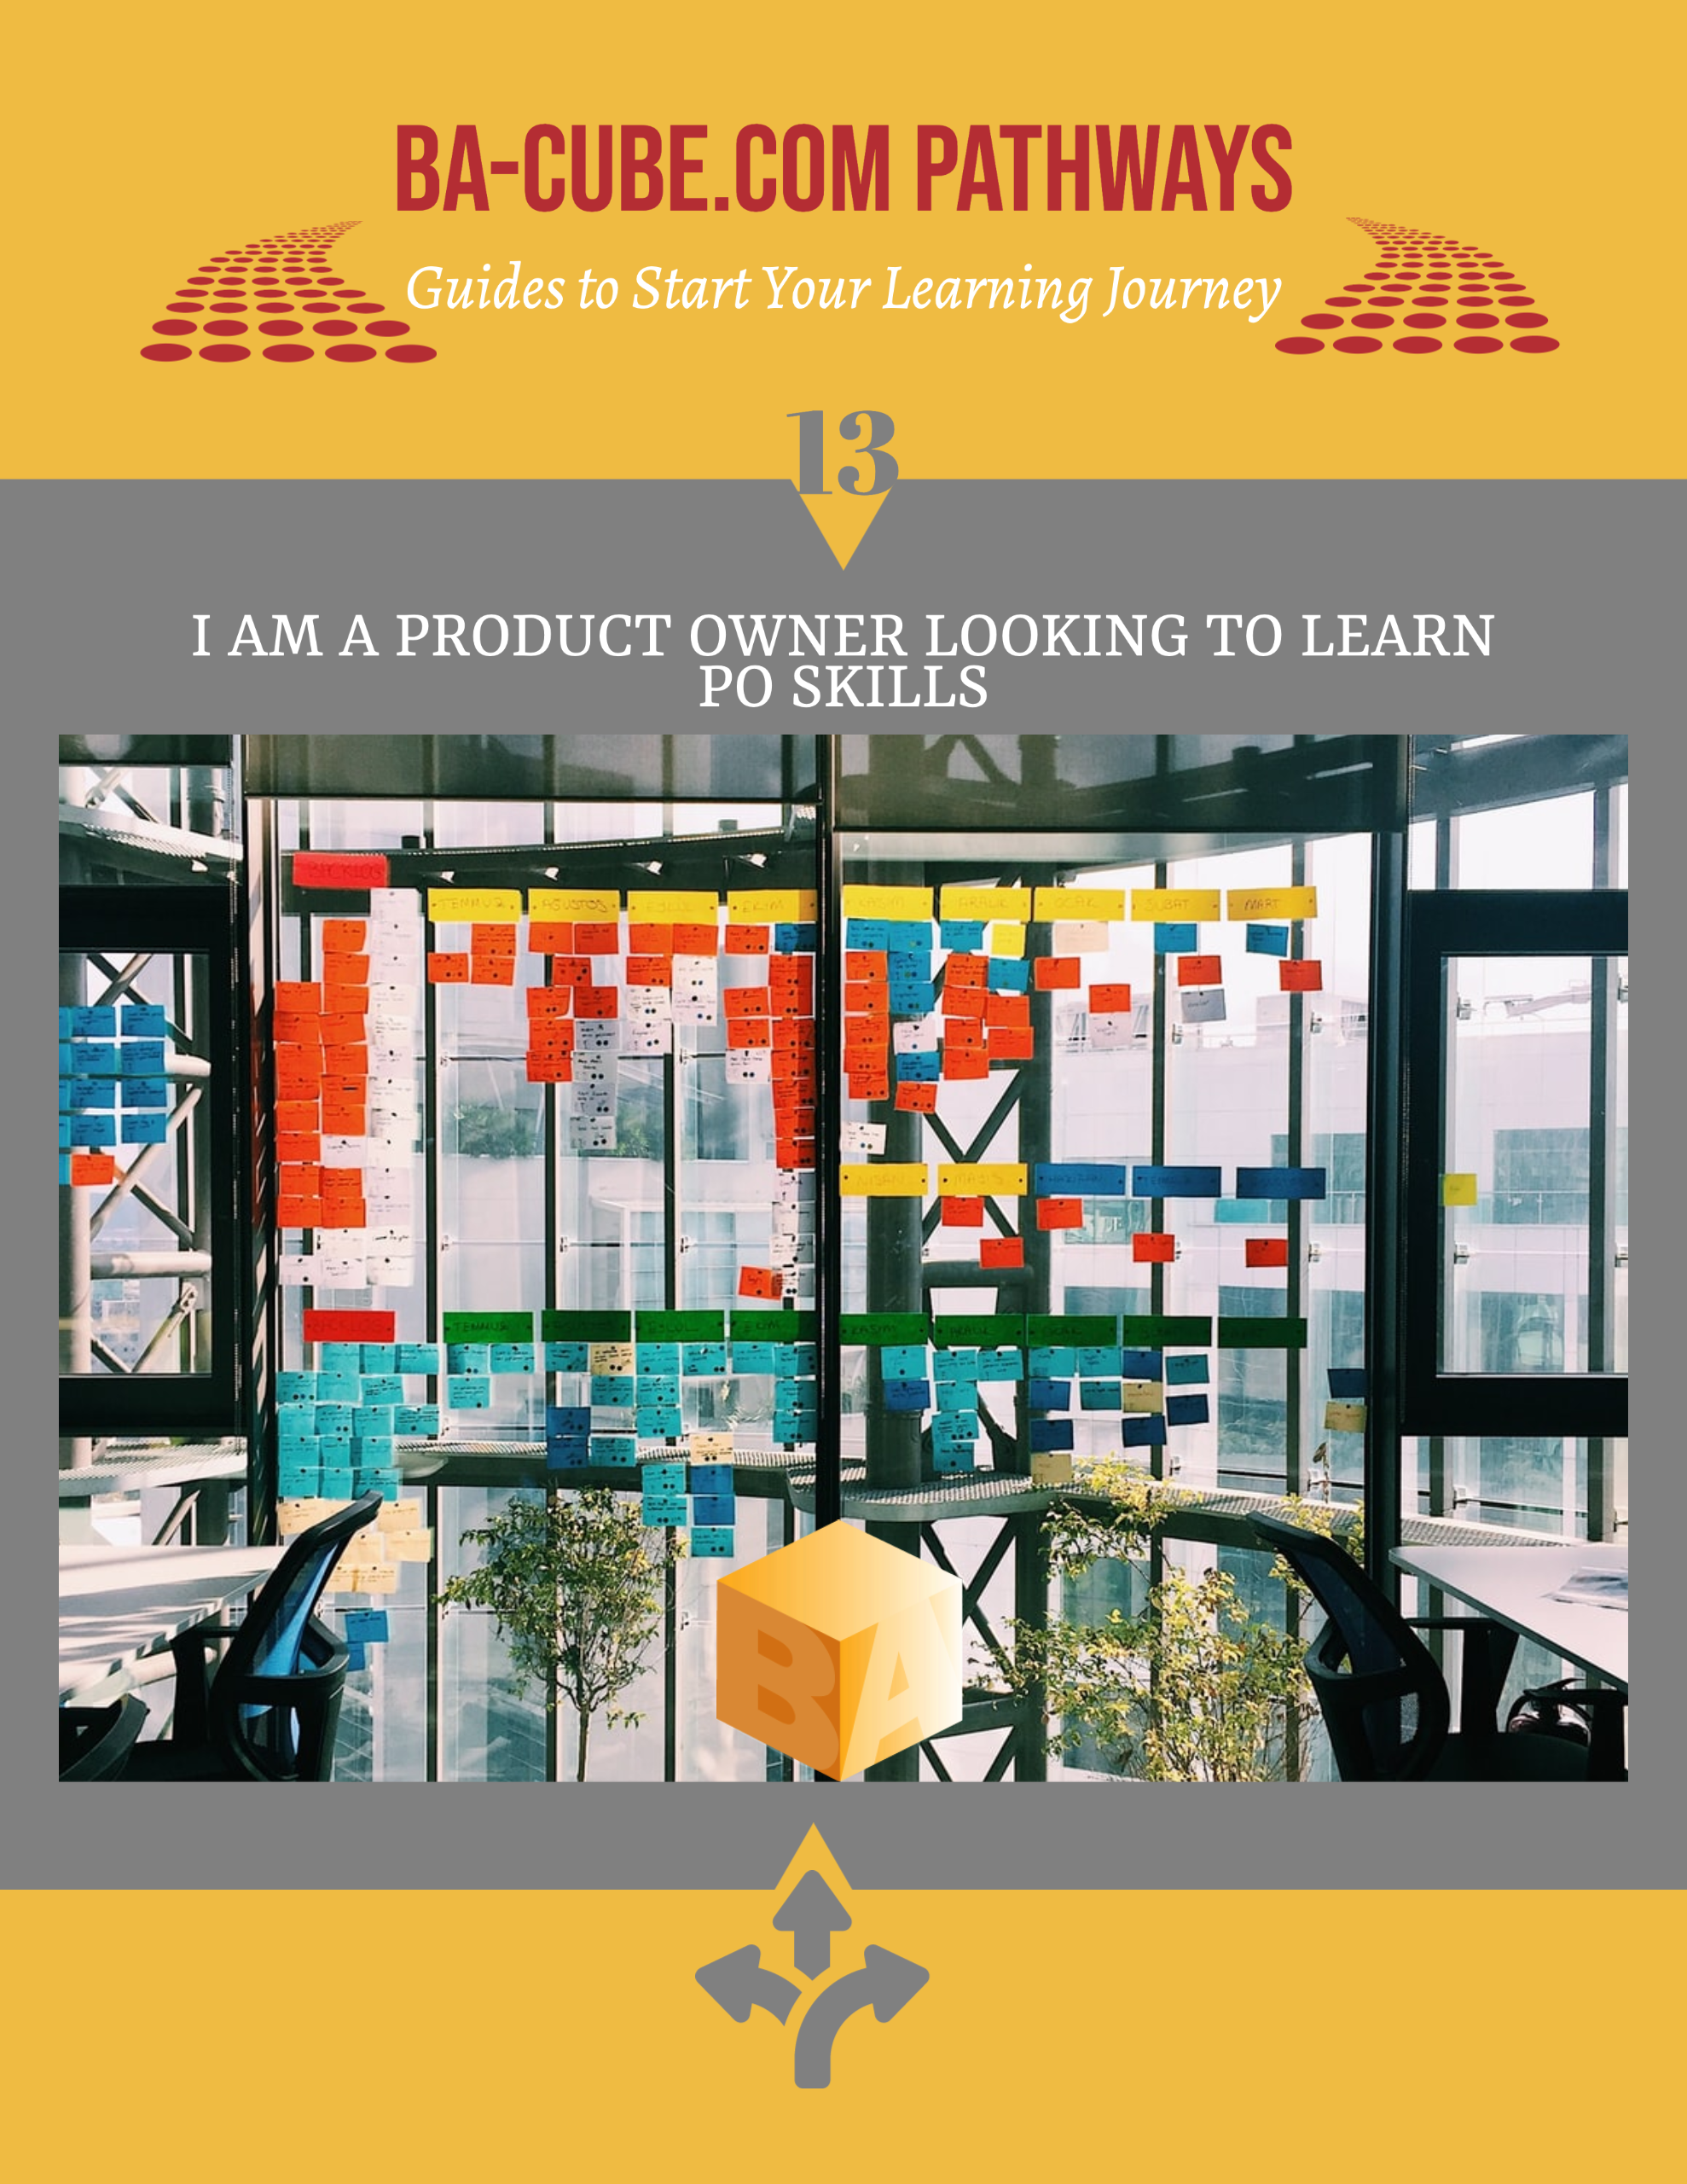 Pathway 13: I am a Product Owner Looking to Learn PO Skills